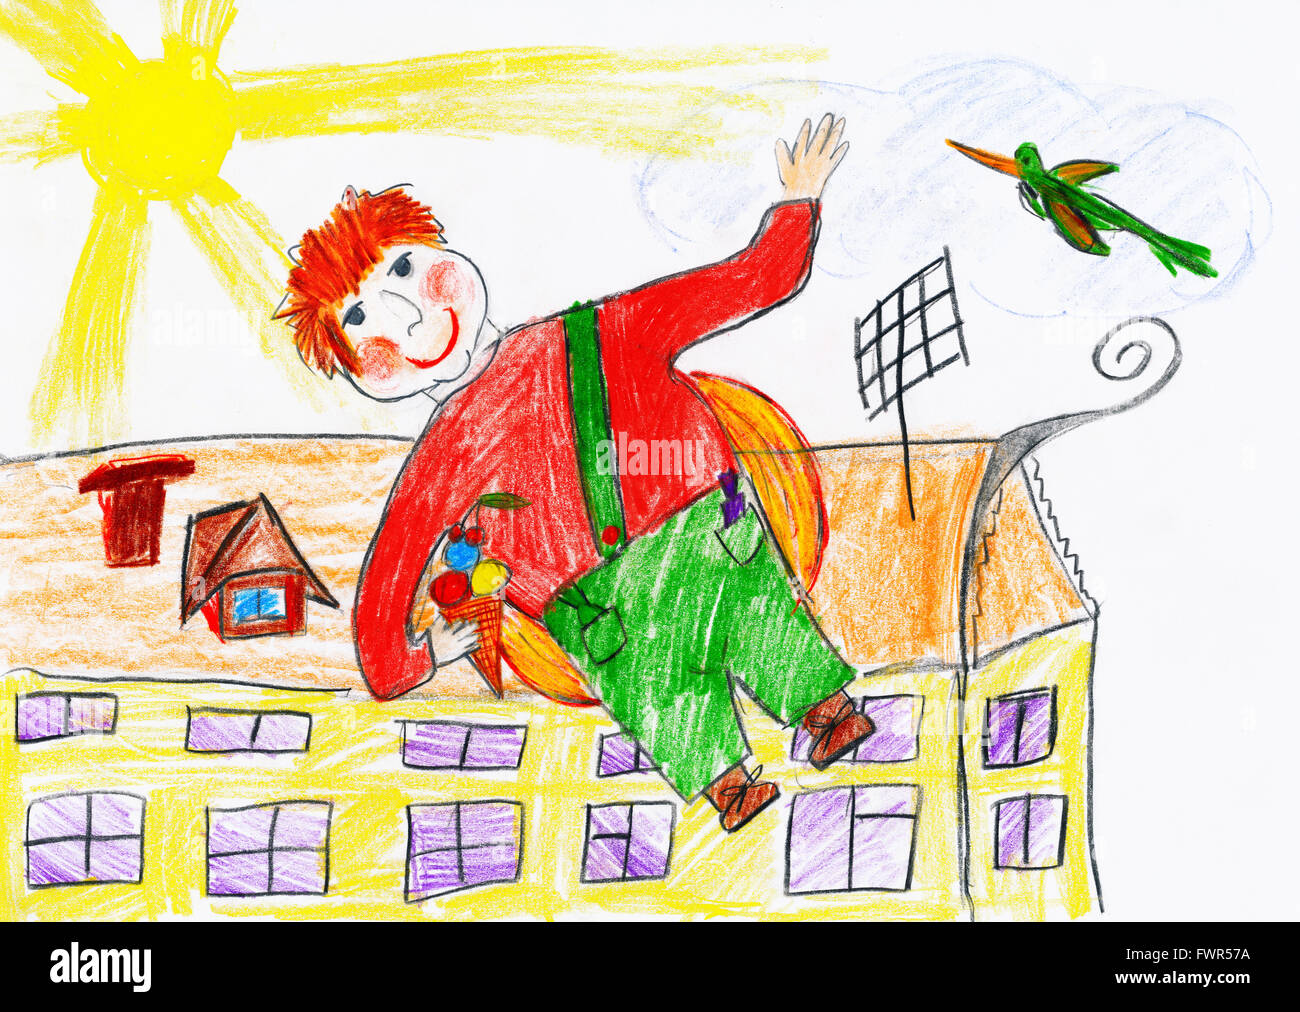 boy fly with airscrew on his back, child drawing object on paper, hand drawn art picture - Stock Image